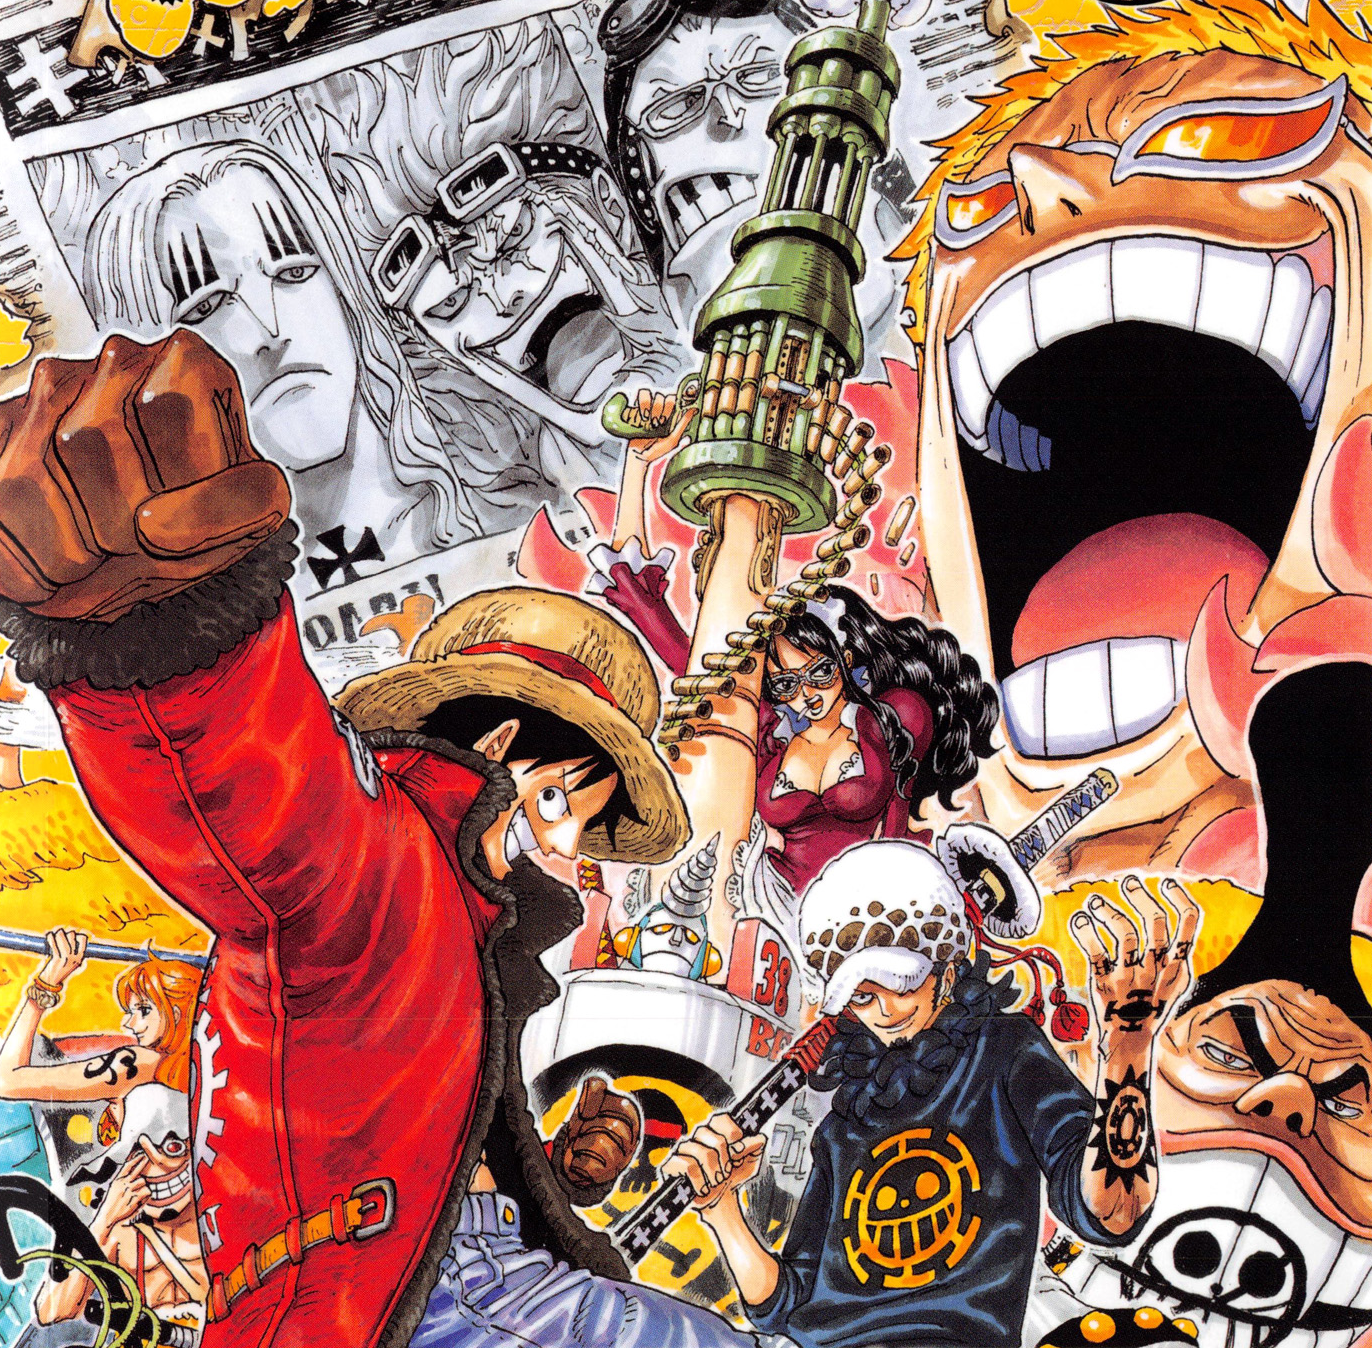 Current Power Levels Of Toriko/Naruto/One Piece Characters